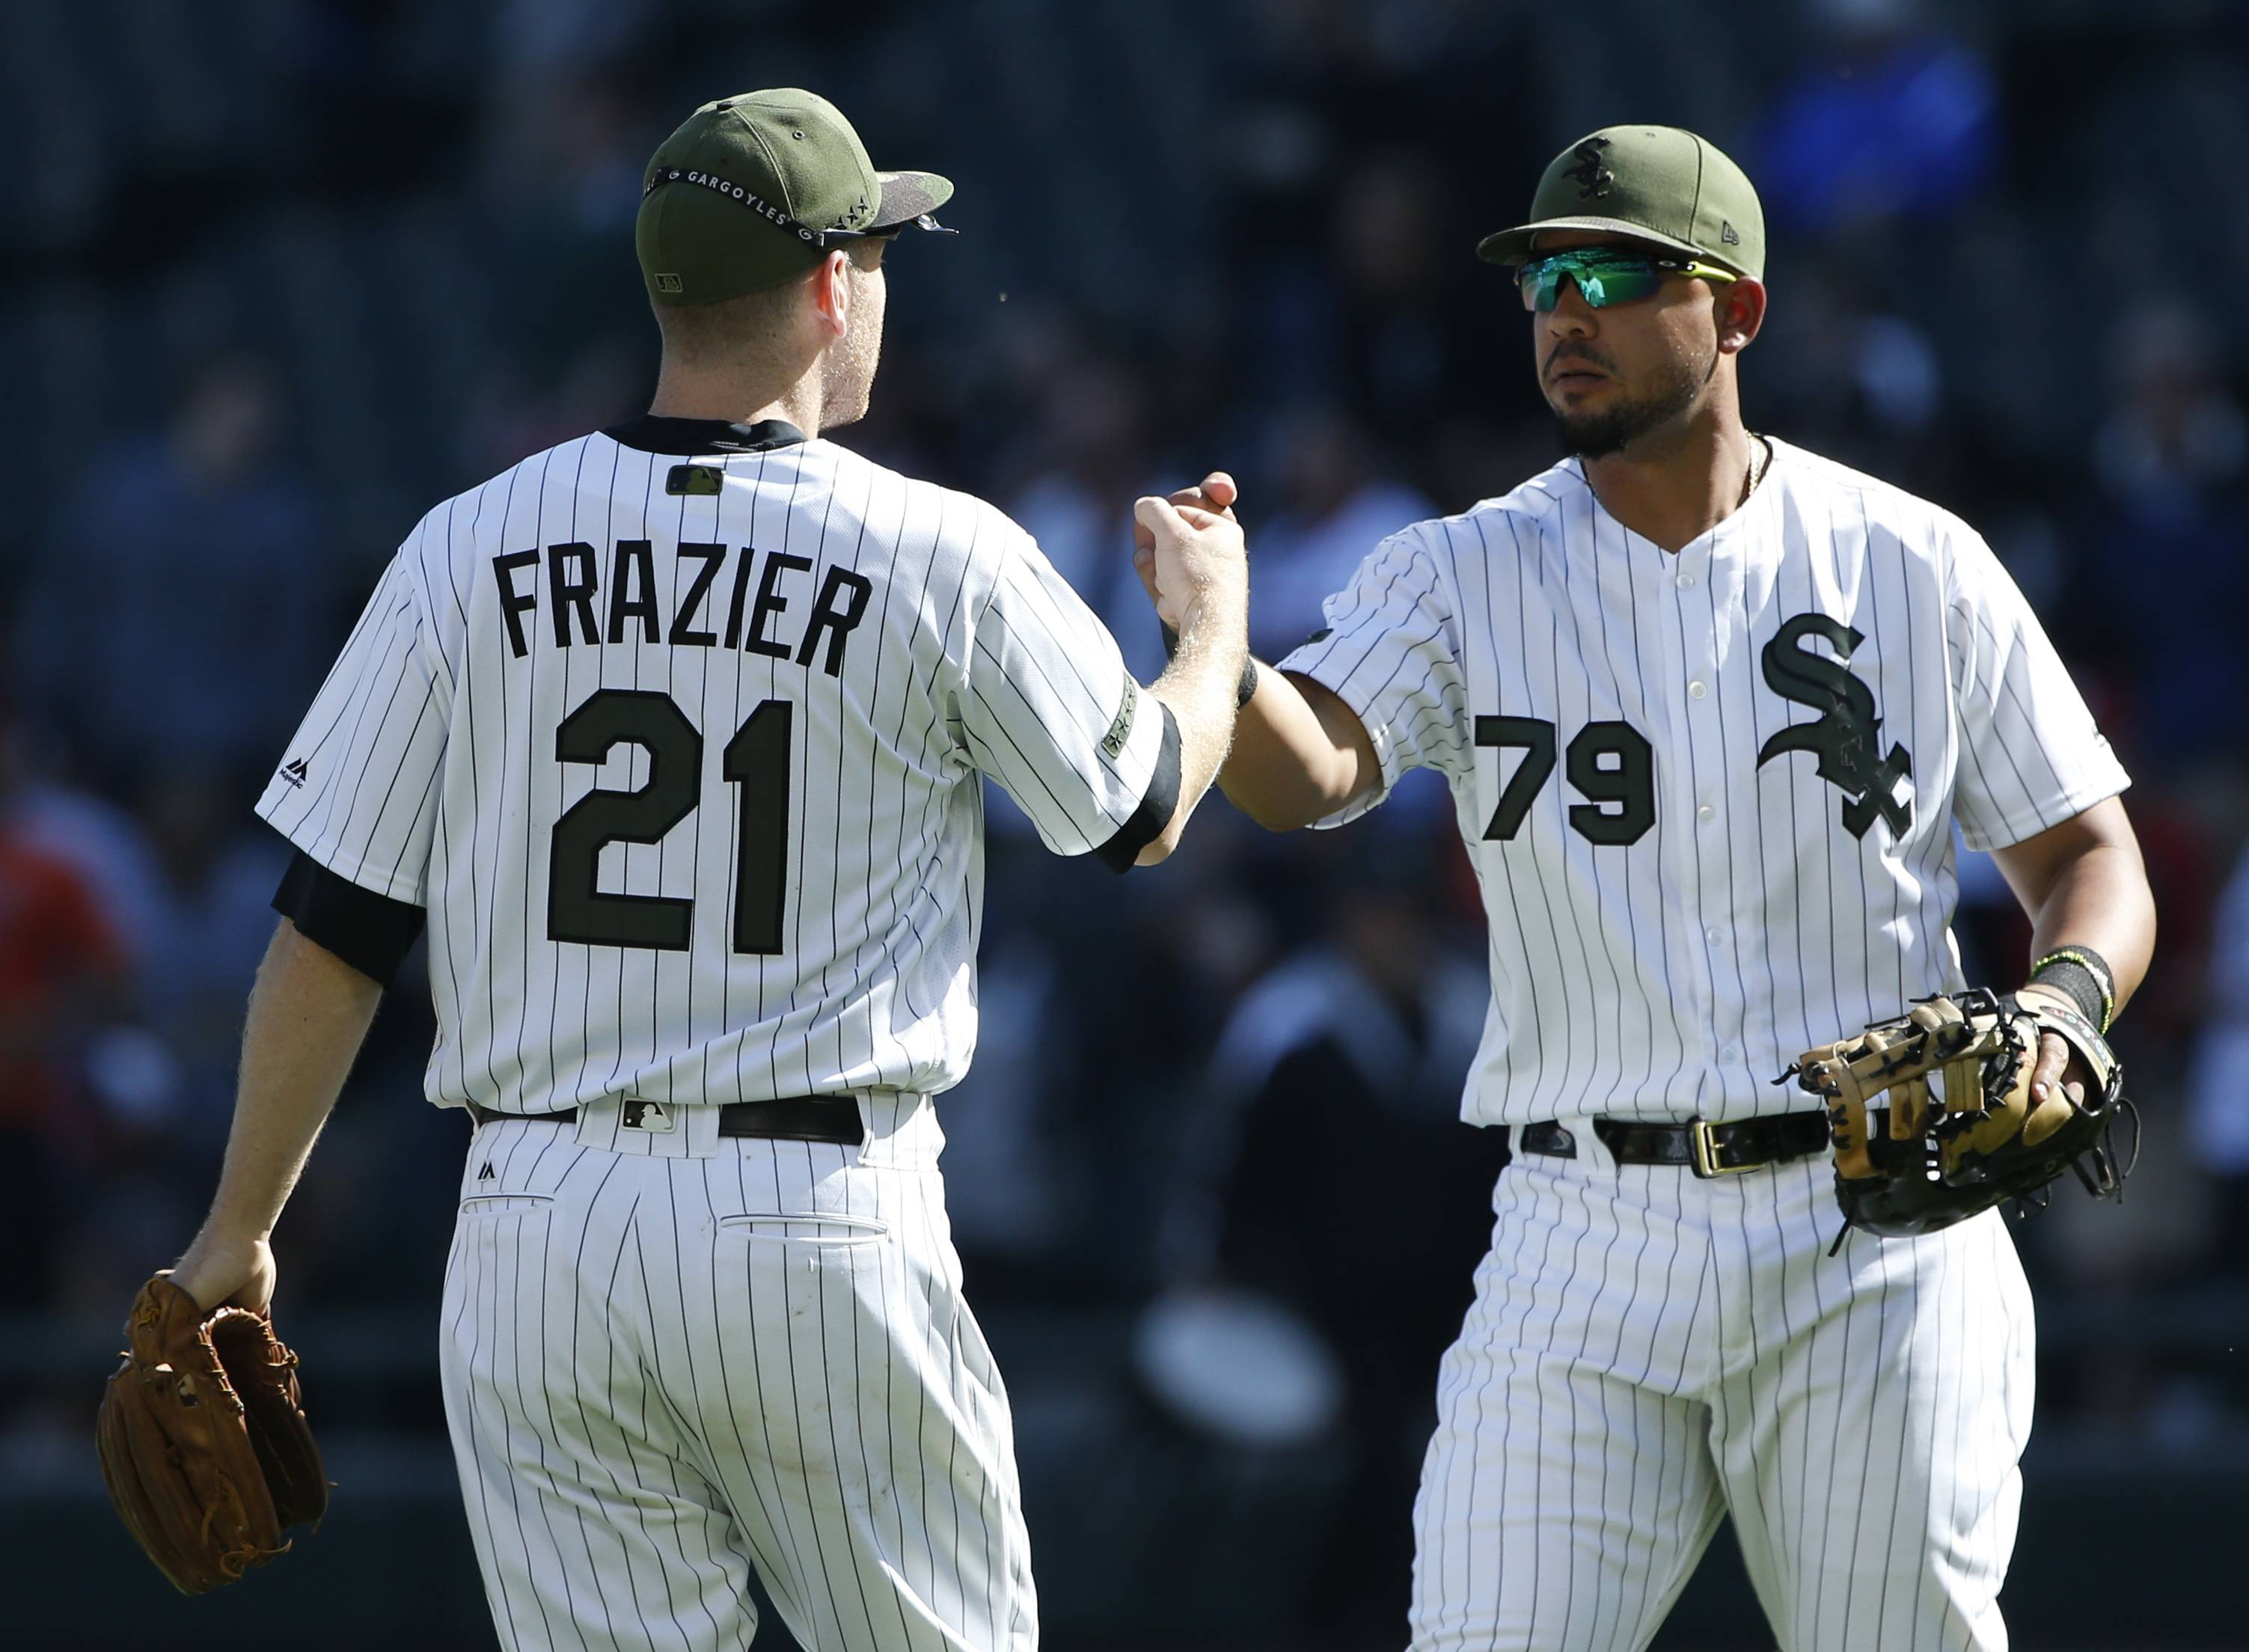 Chicago White Sox's Todd Frazier, left, celebrates with Jose Abreu after they defeated the Detroit Tigers in a baseball game, Sunday, May 28, 2017, in Chicago. (AP Photo/Nam Y. Huh)